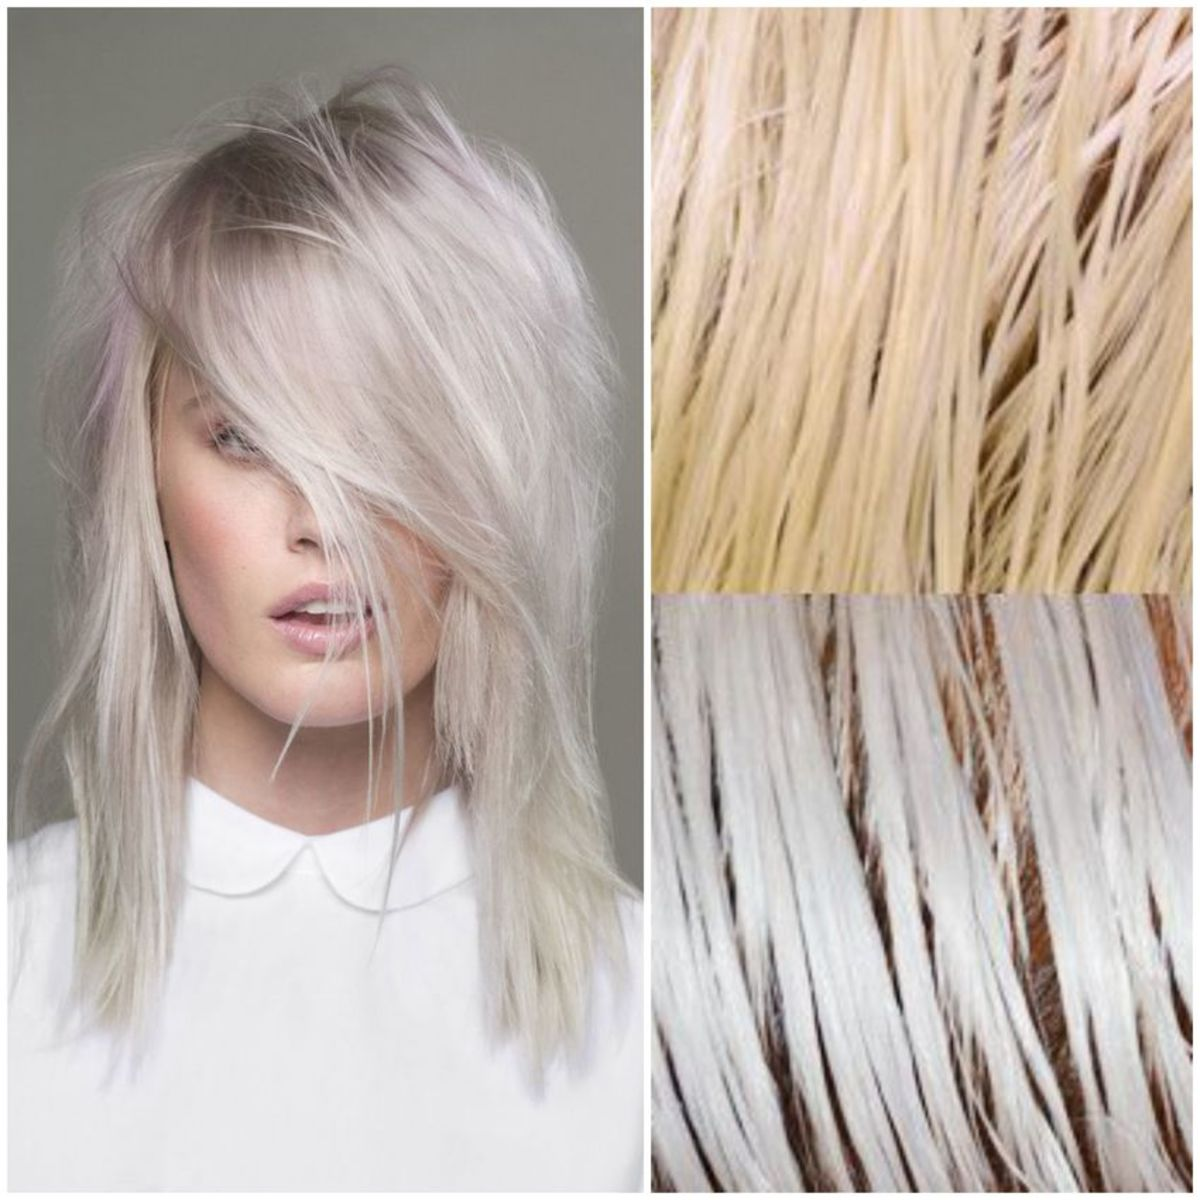 How To Remove Brassy Tones From Bleached Blonde Hair